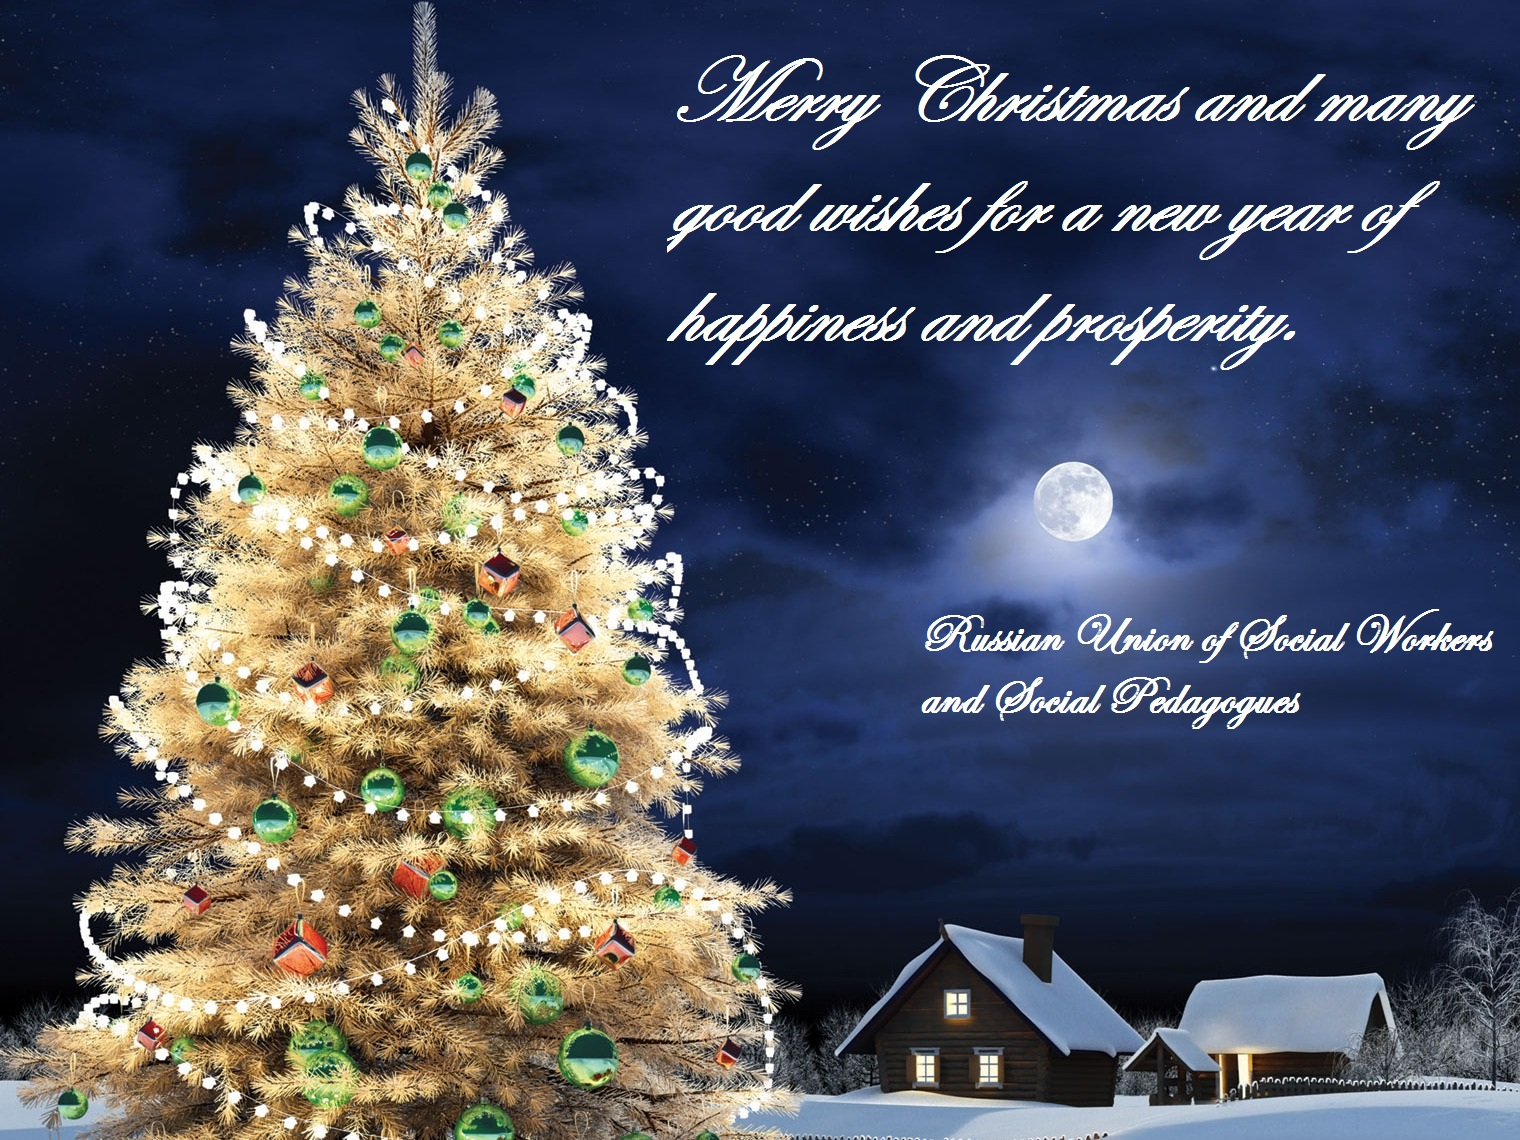 Ifsweurope Christmas Greetings From Russia